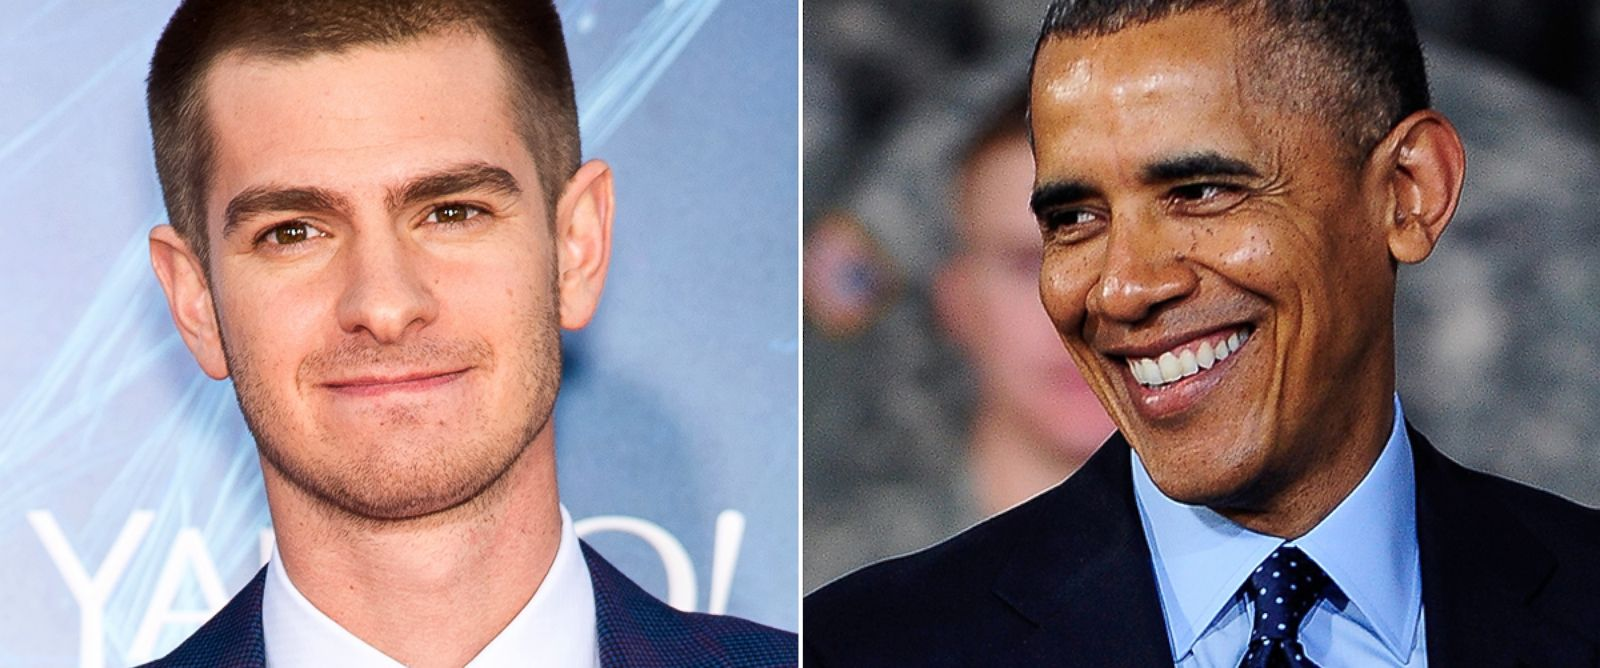 "PHOTO: Andrew Garfield attends ""The Amazing Spider-Man 2"" premiere at the Ziegfeld Theater, April 24, 2014, in New York City. President Barack Obama delivers remarks for the U.S. military personnel at Yongsan Army Garrison, April 26, 2014, in Seoul."